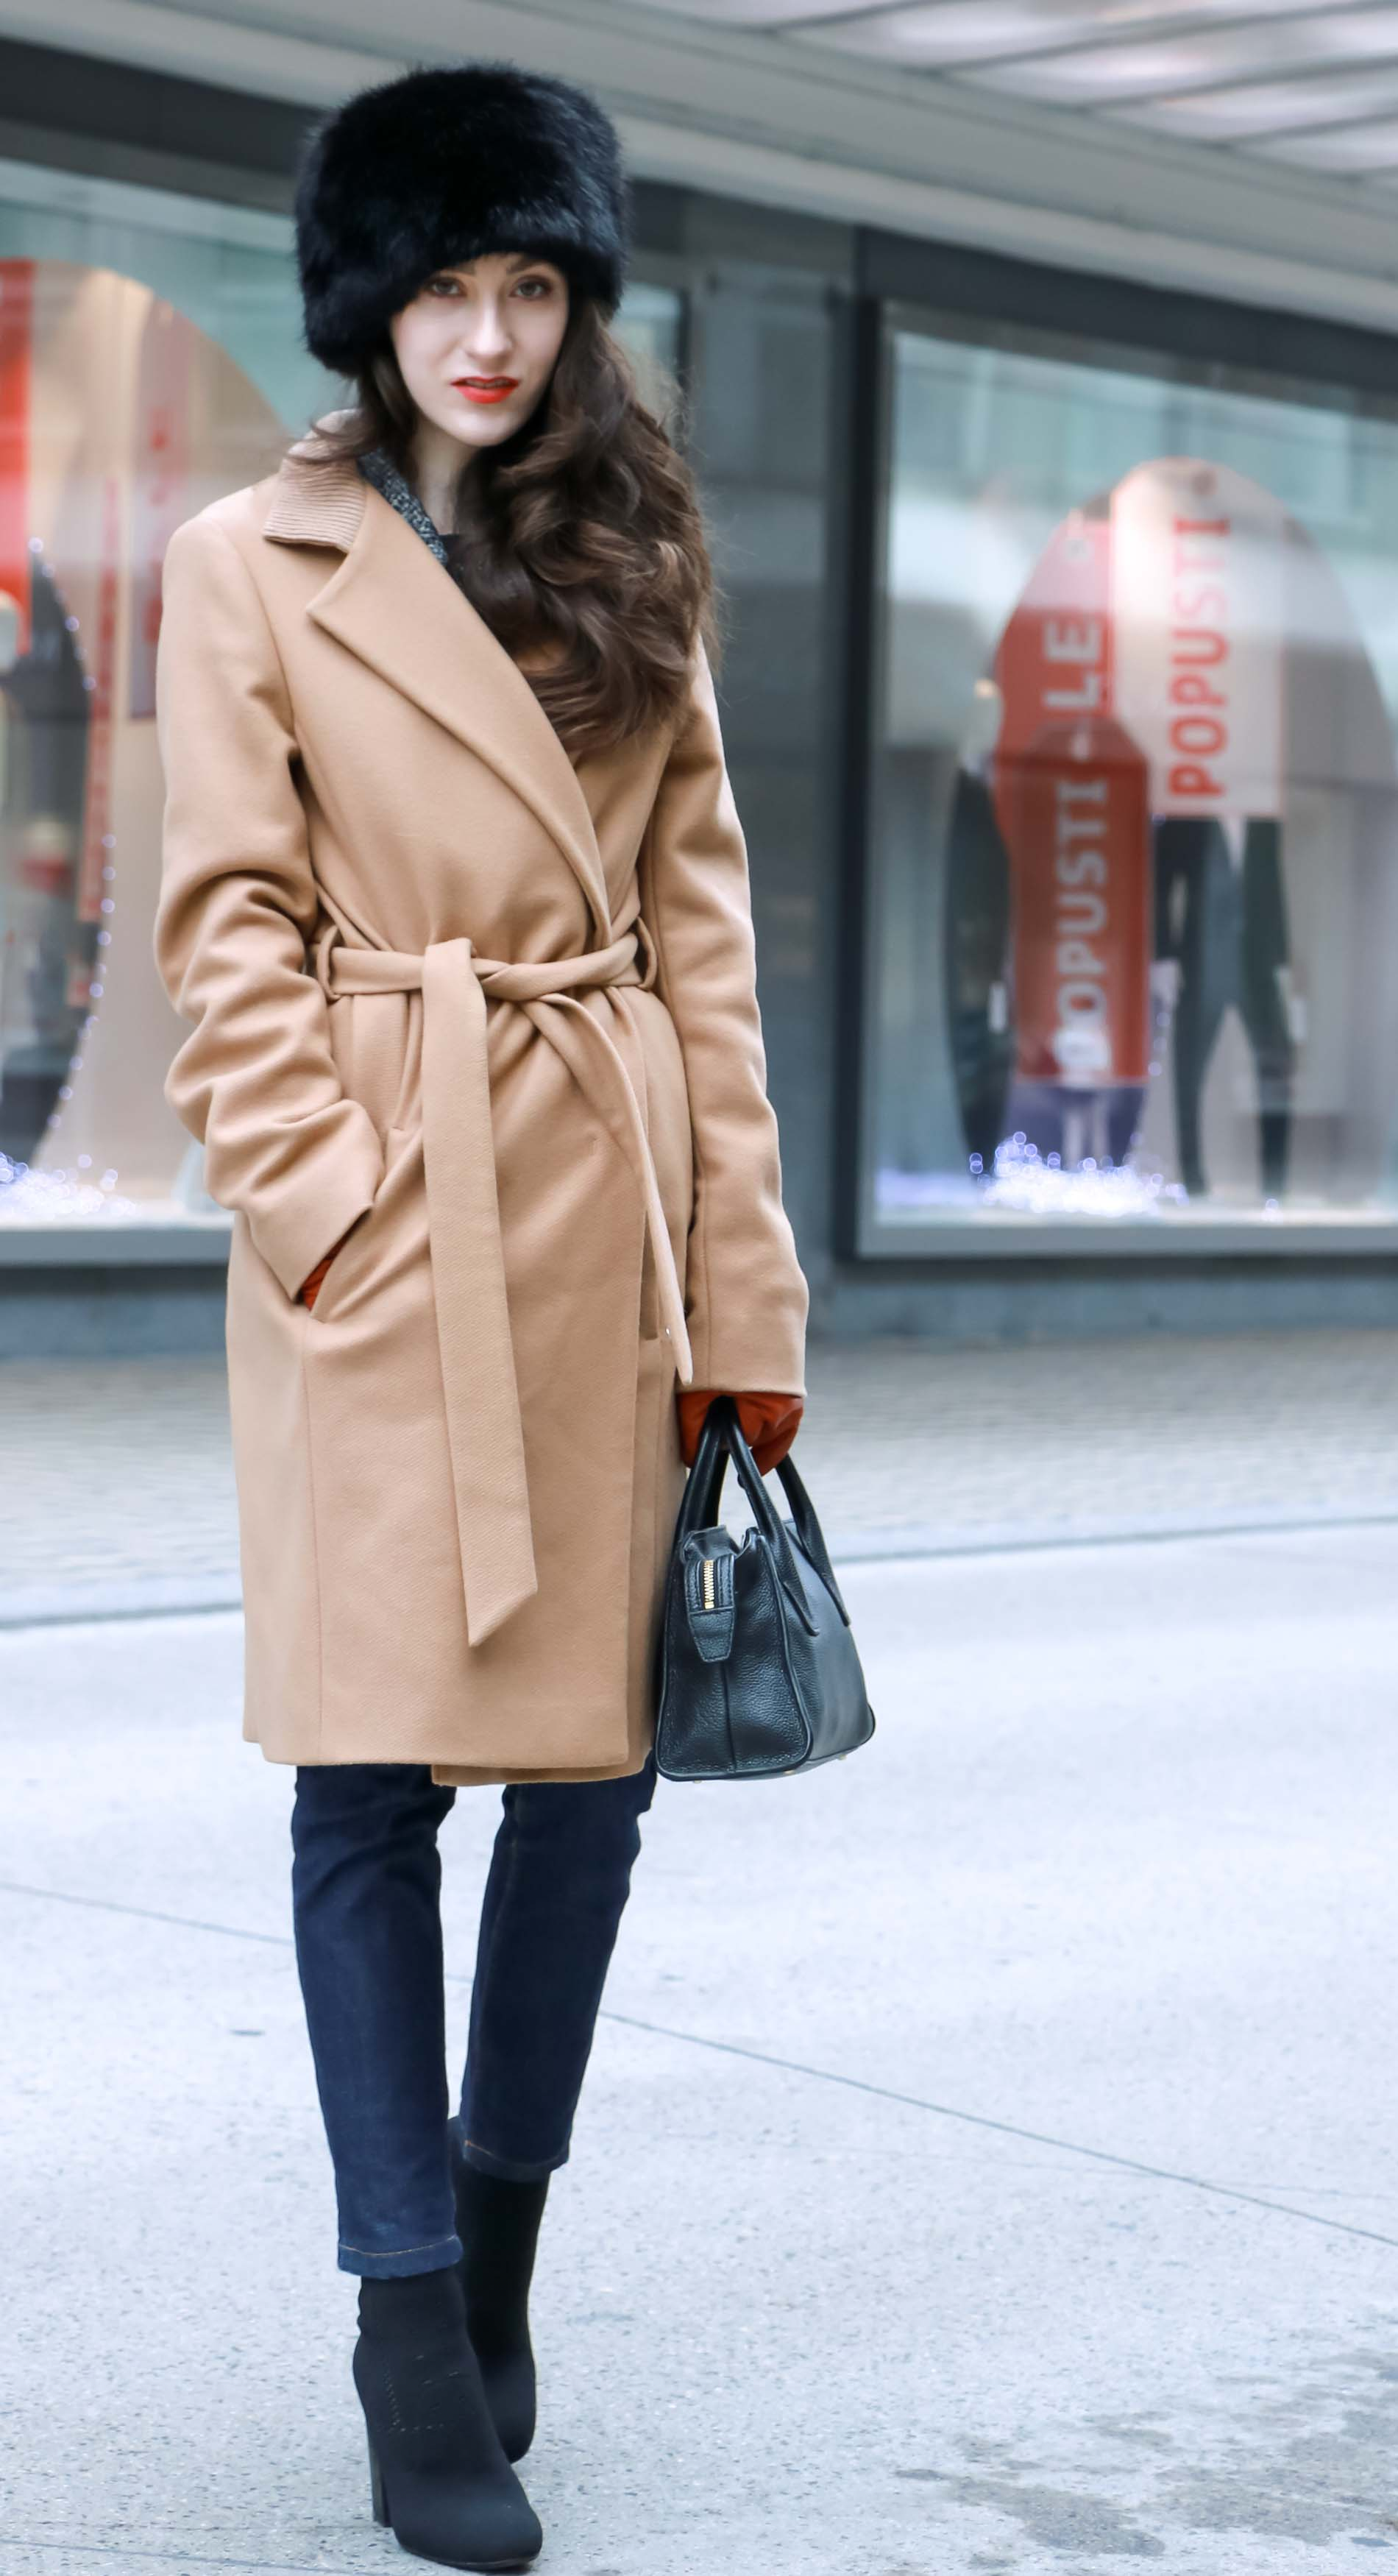 Veronika Lipar of Brunette from Wall Street wearing wrap Escada camel coat, A.P.C. dark tapered denim jeans, black sock boots from Elena Iachi, black fur hat and small black top handle bag while standing the street